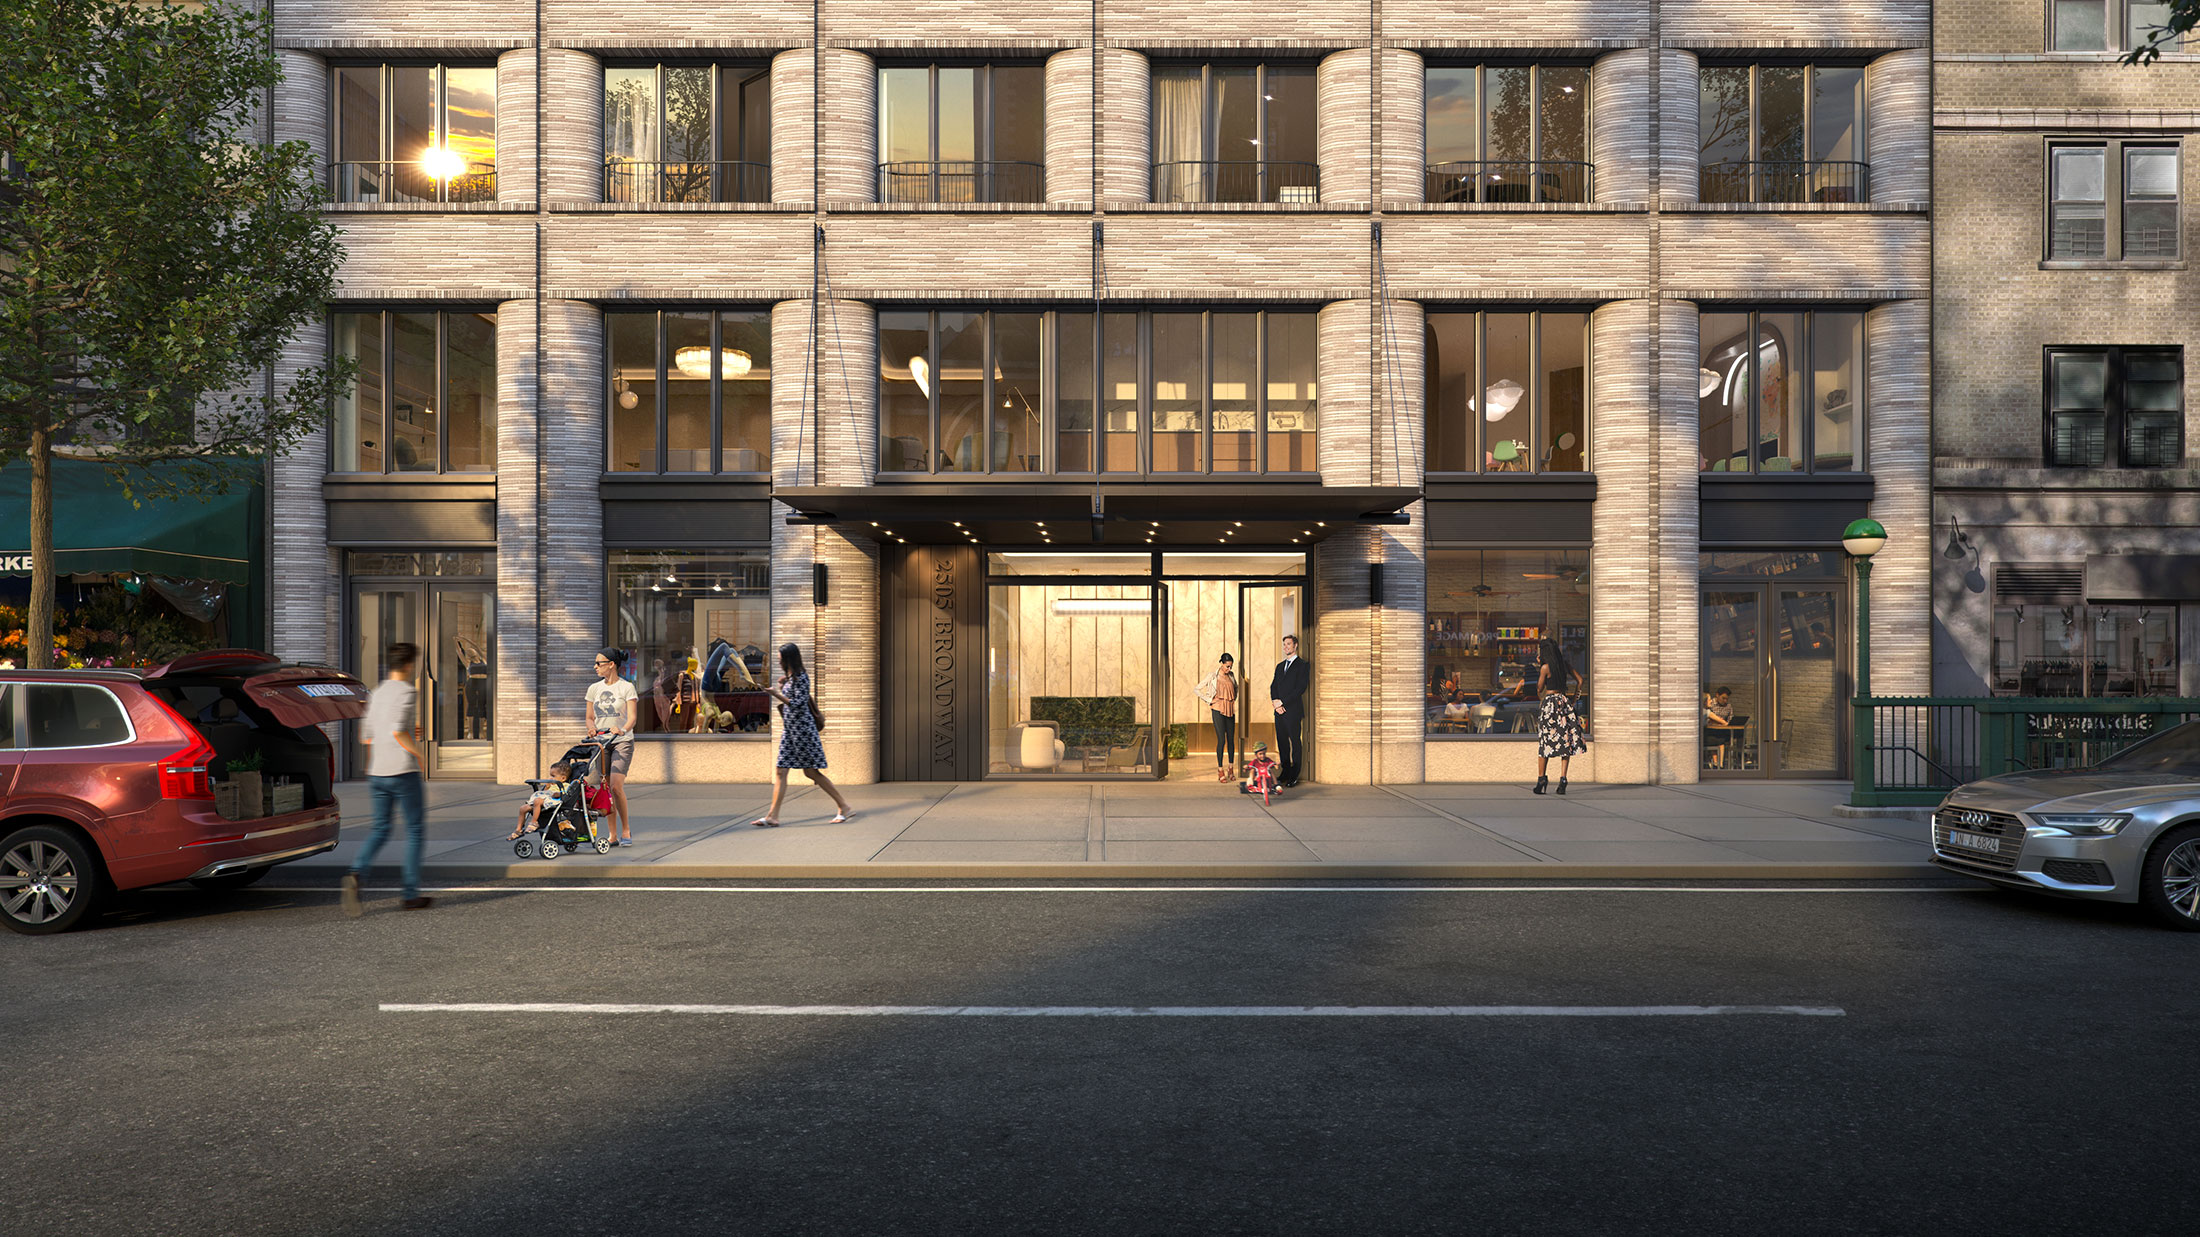 Architectural Rendering of the entrance of the 2505 Broadway building project located on the Upper West Side in New York City